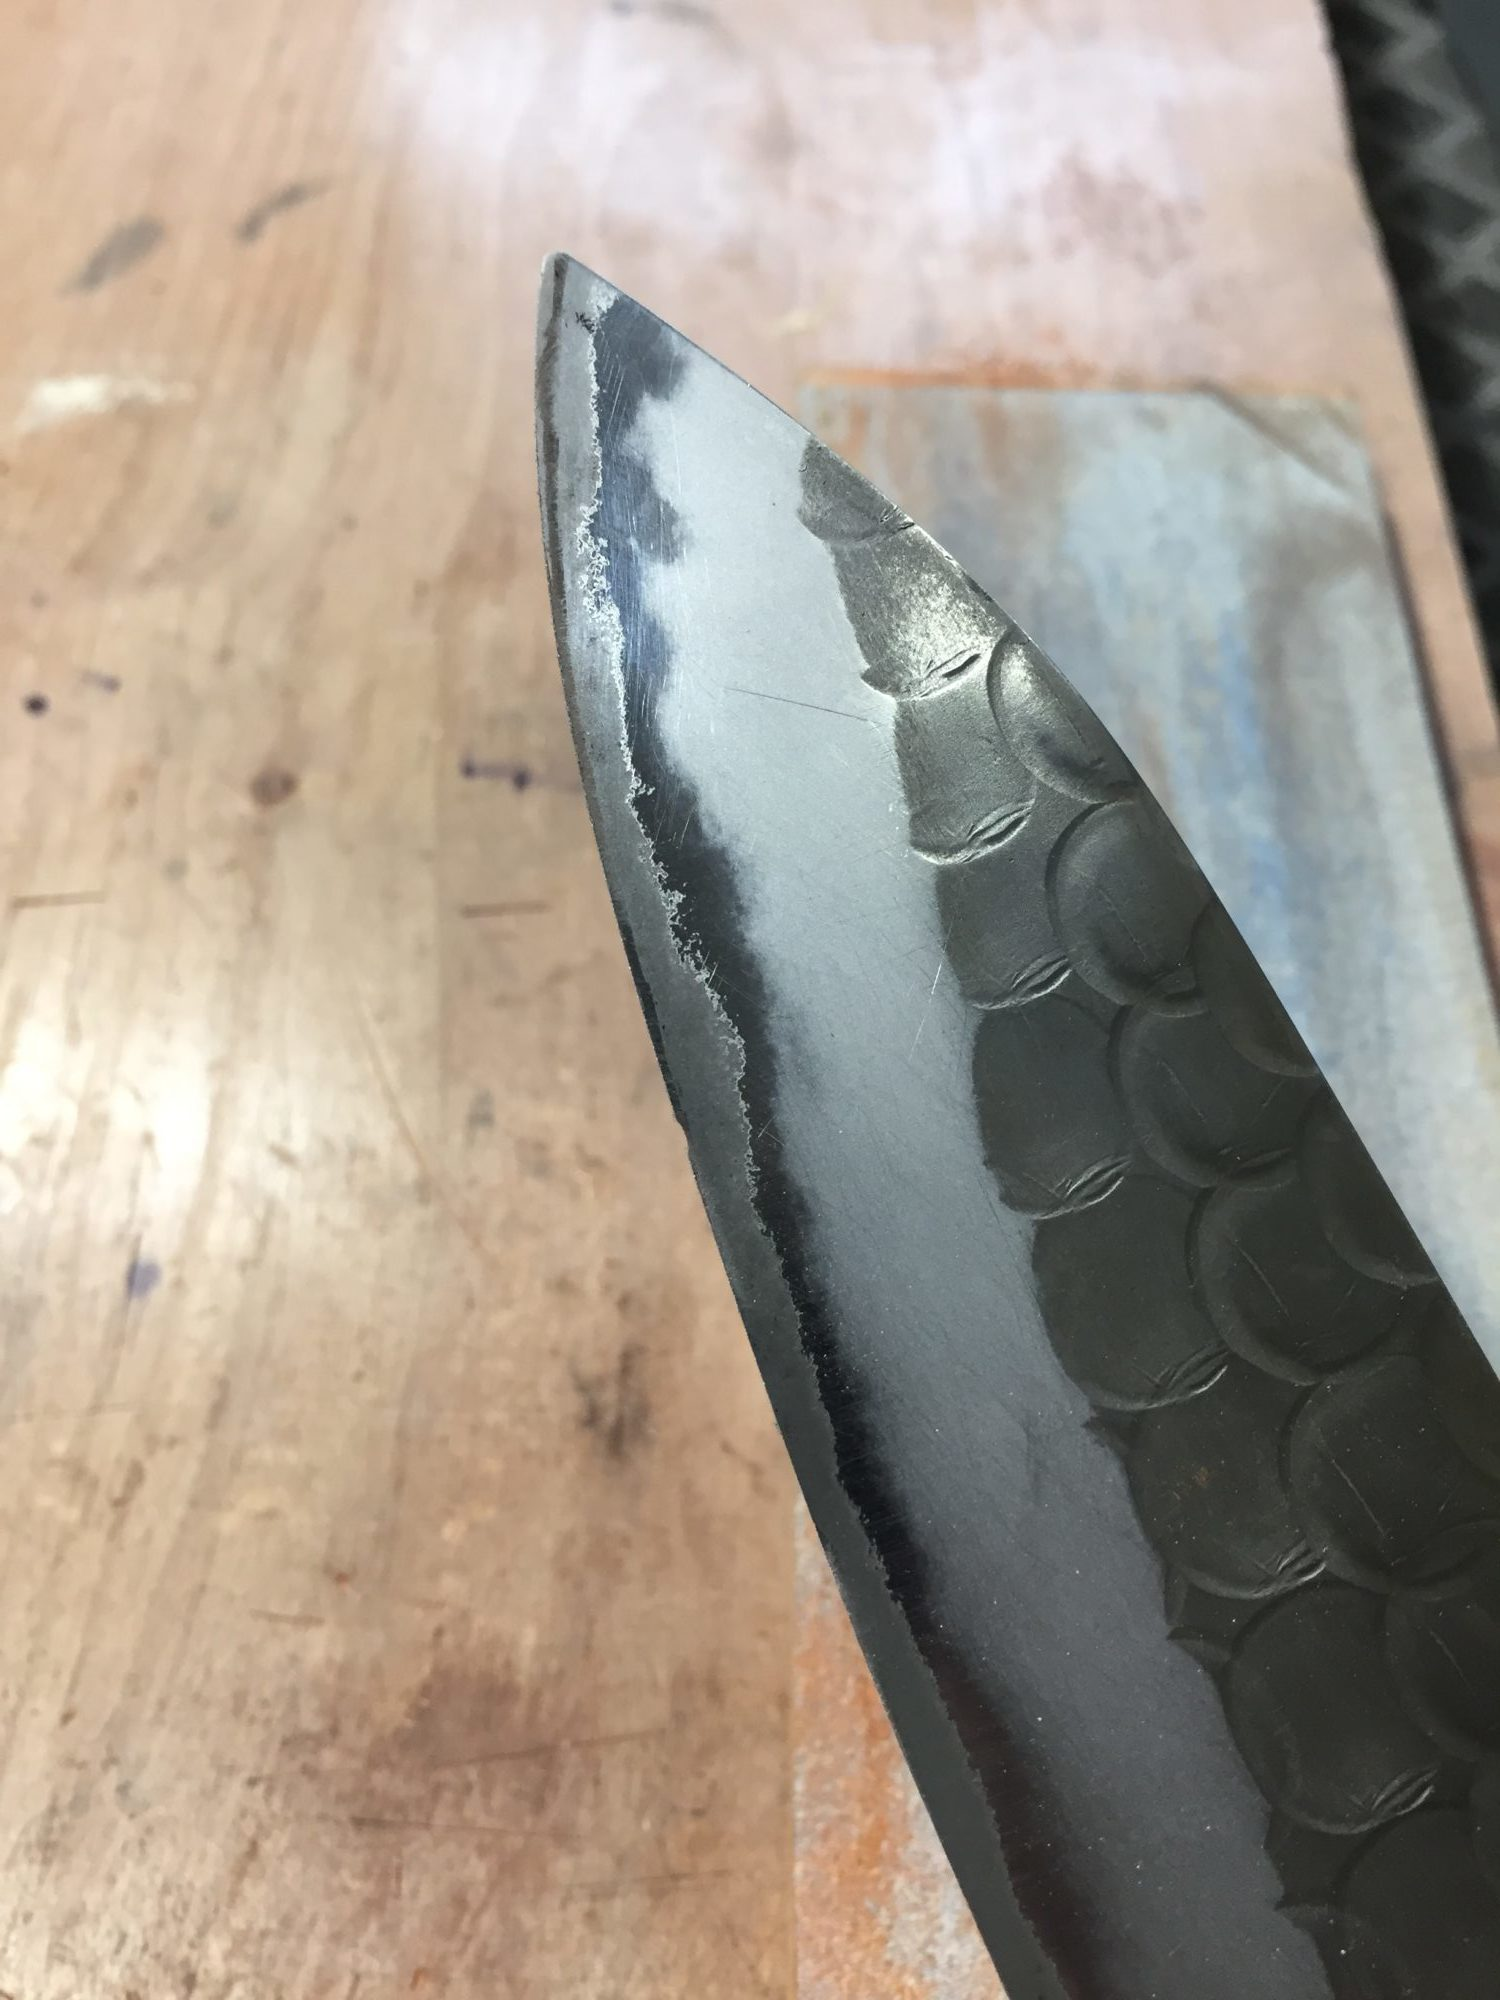 grinding out a chip in chef knife